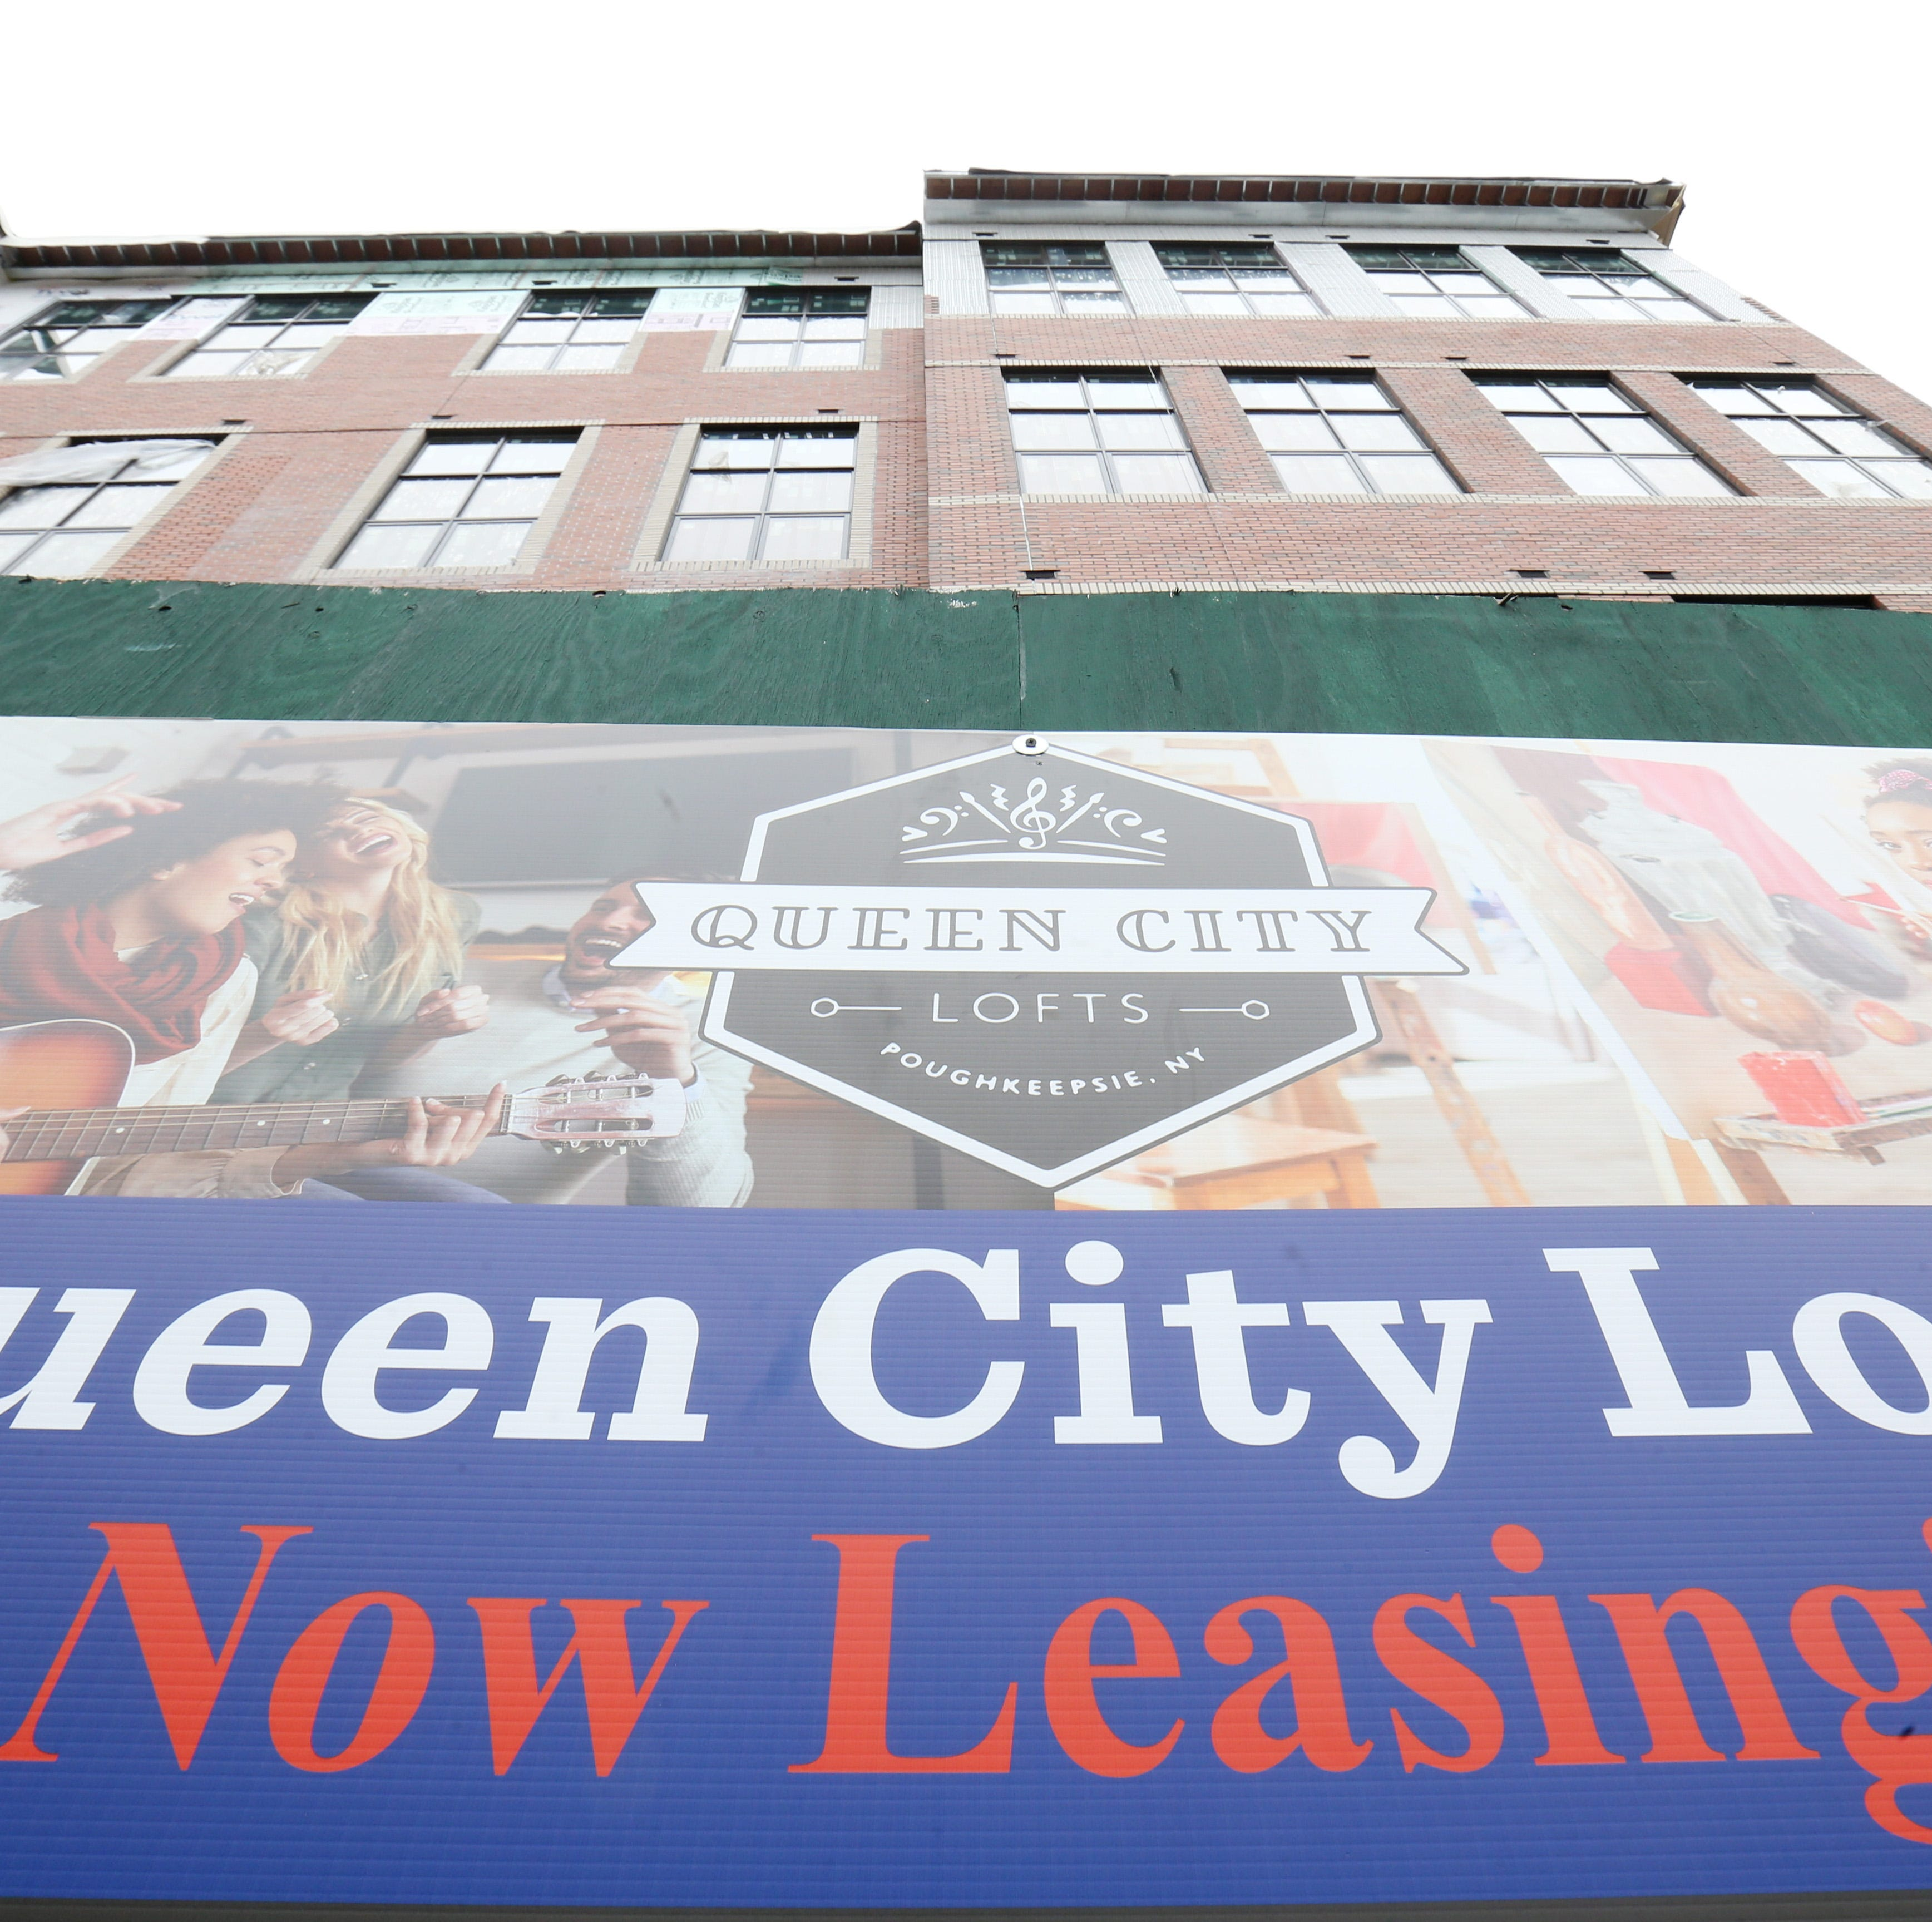 Queen City Lofts on Main Street in the City of Poughkeepsie on November 15, 2018.